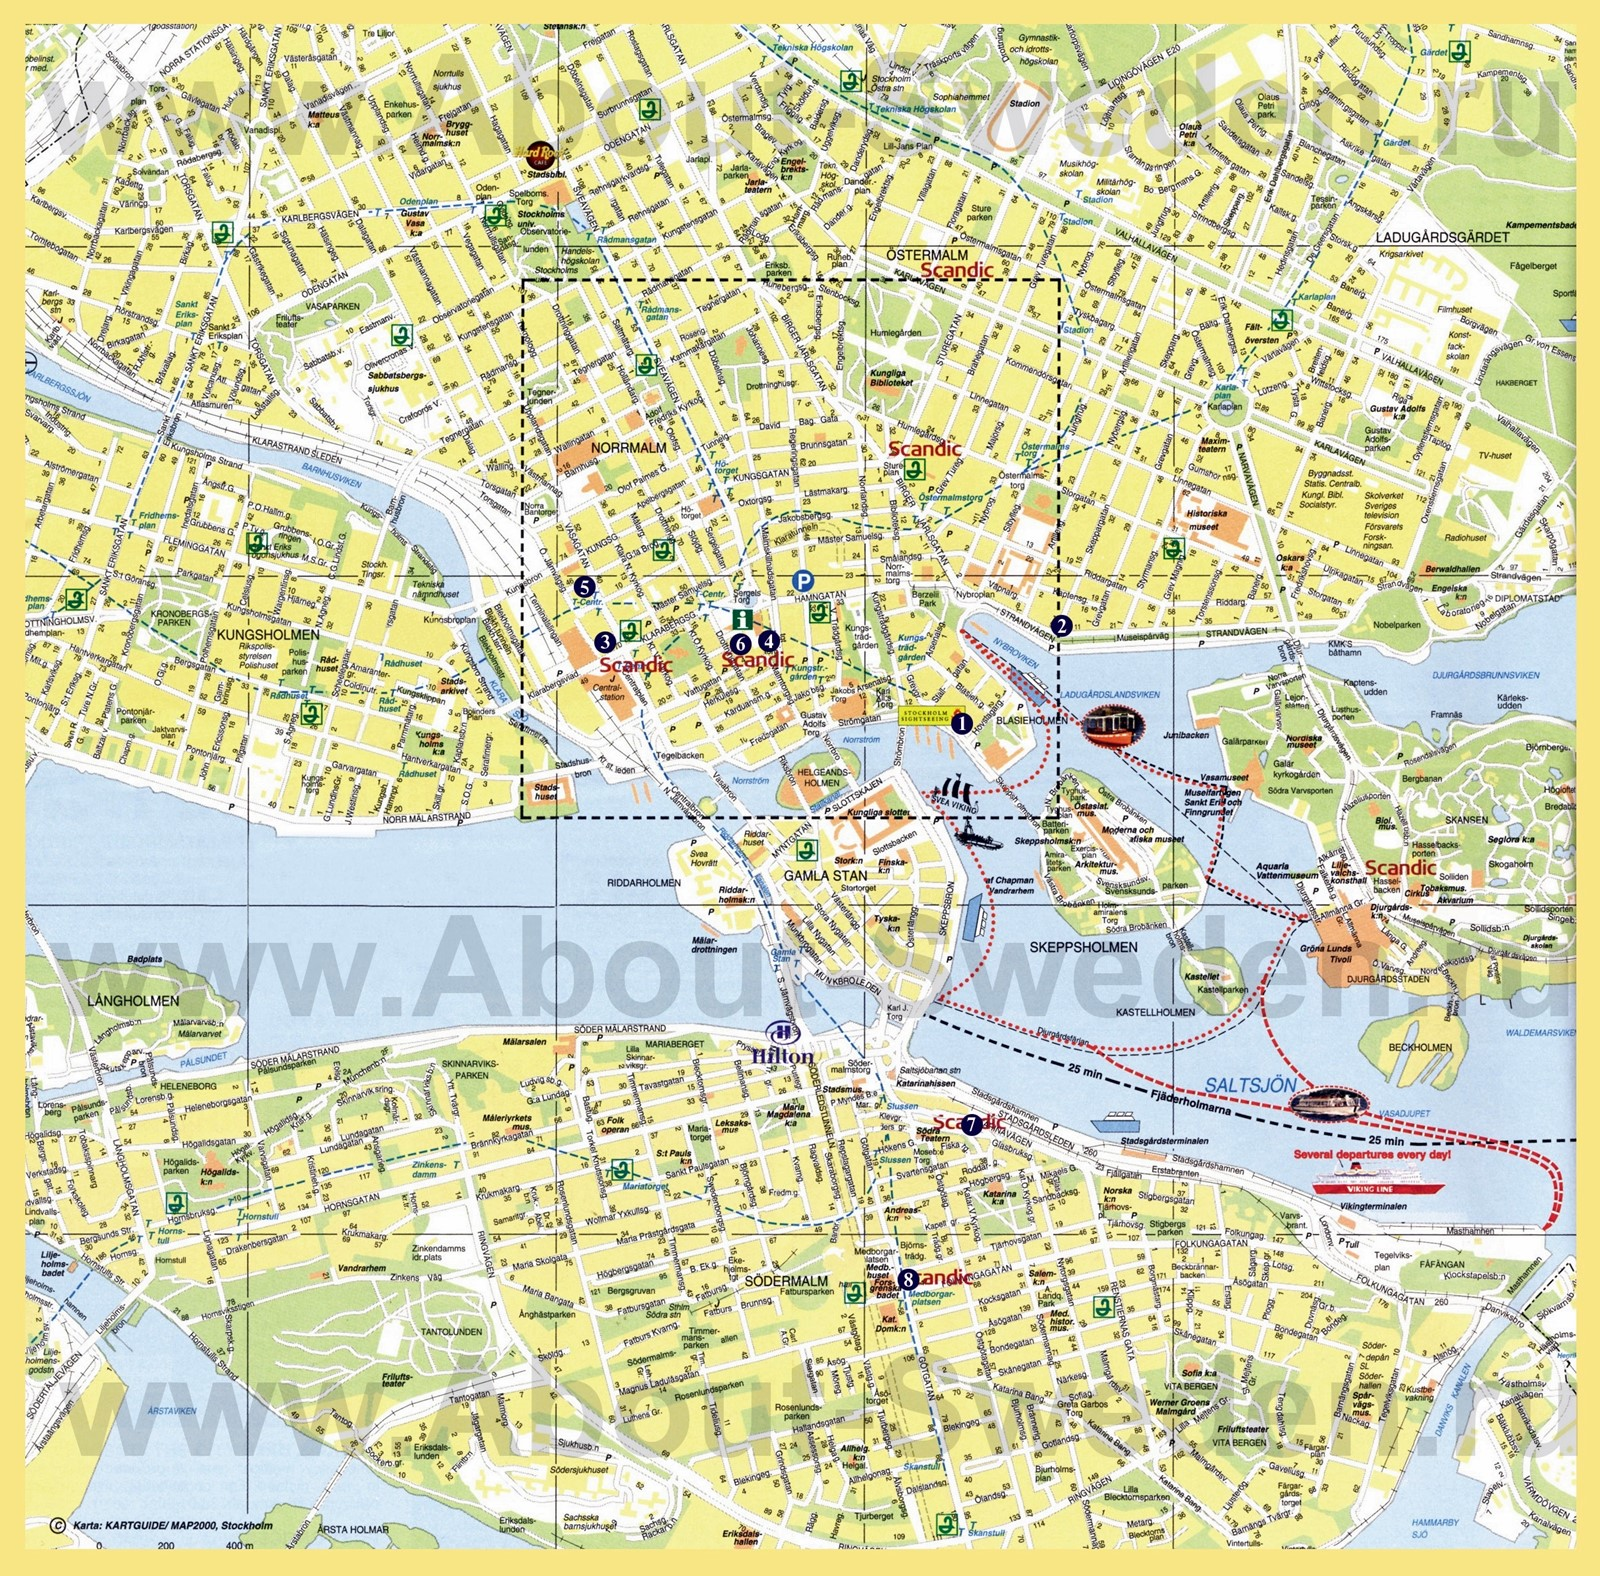 Stockholm map detailed city and metro maps of stockholm for high resolution large map of stockholm download for print out sciox Choice Image